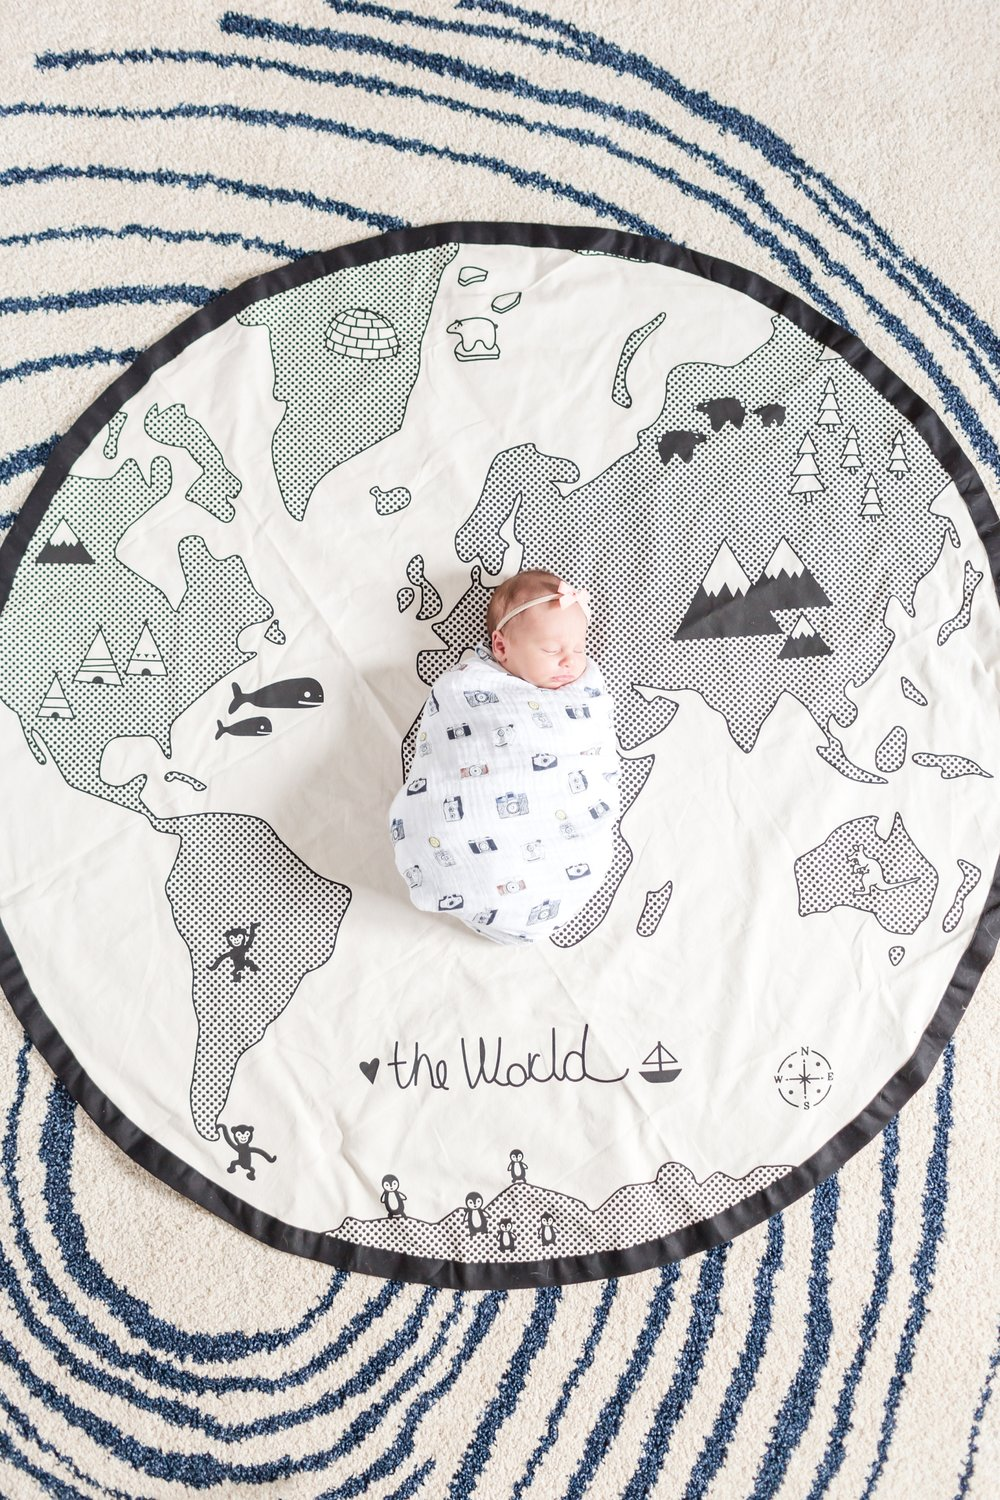 Love this playmat!! Fits perfectly with the travel nursery theme.